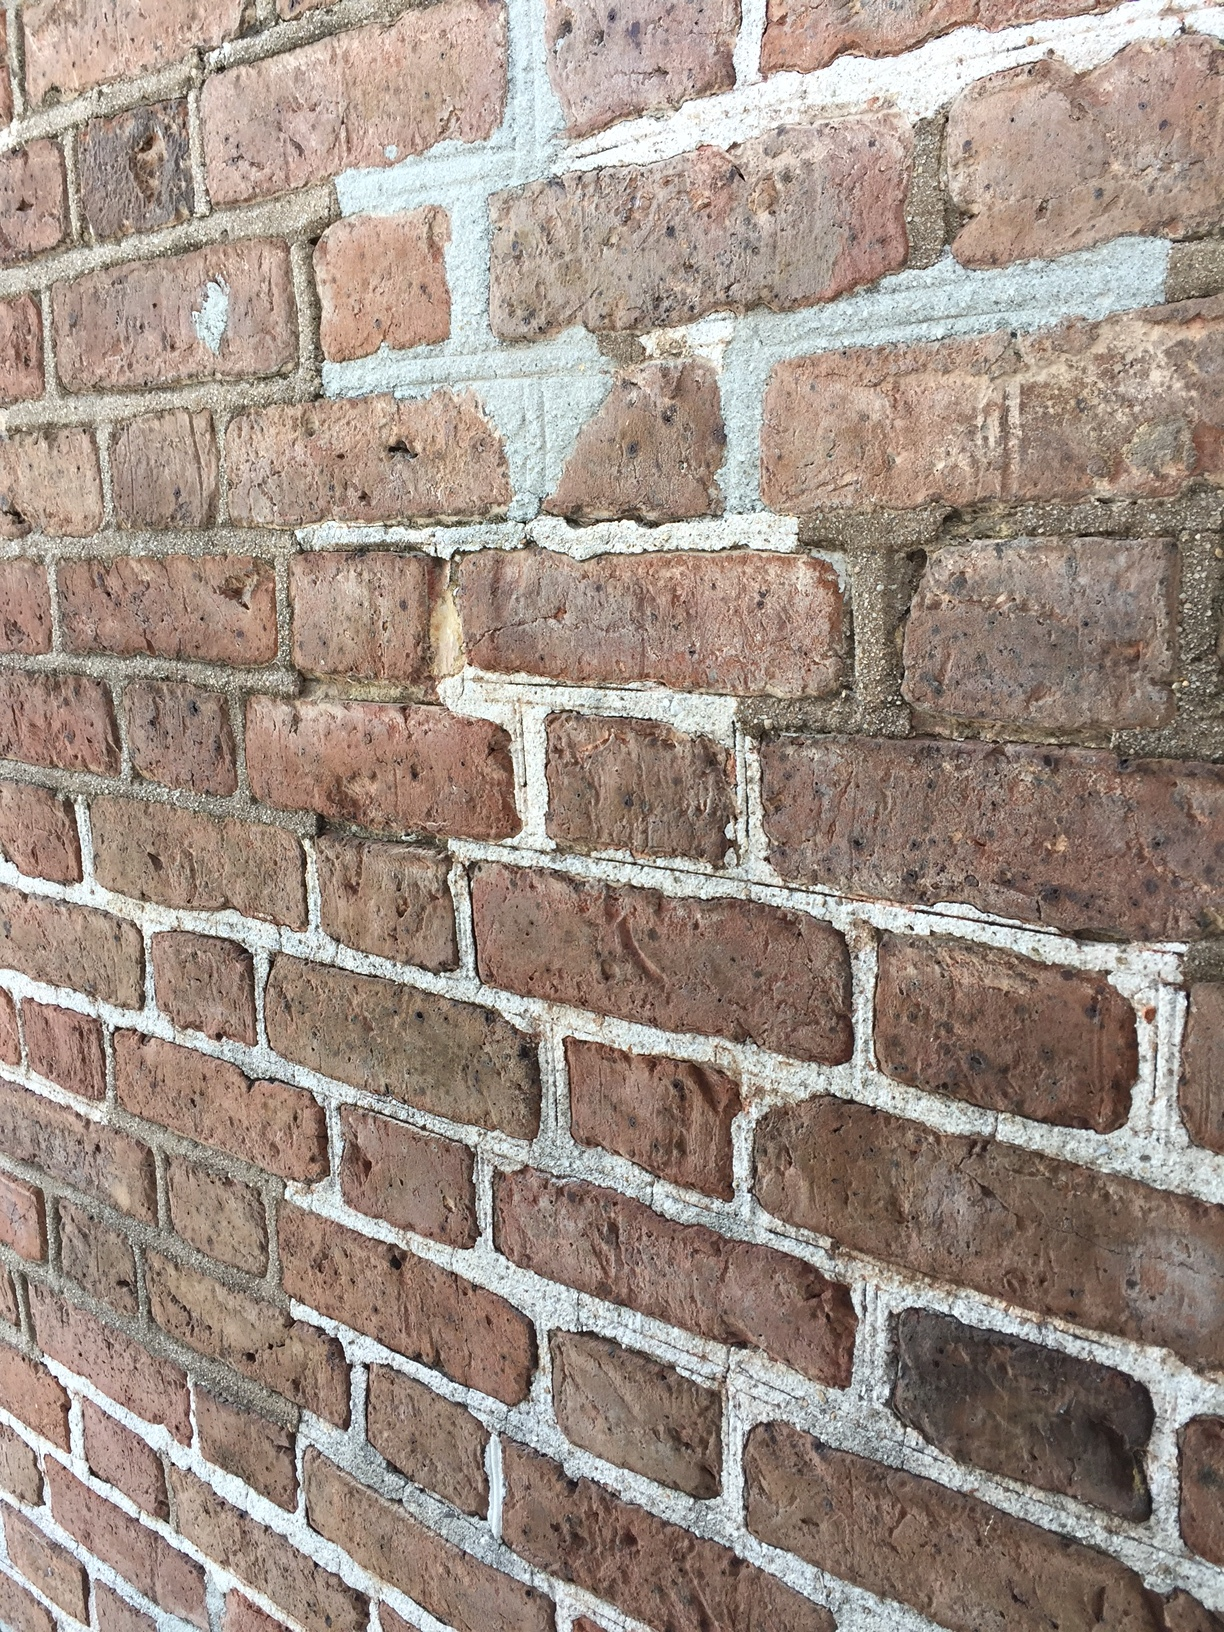 - May 8, 2017The bricks on the façade of 28 Broad Street date from the late 18th century. They are a lot weaker in compressive strength than today's bricks. When choosing mortars for repointing historic masonry it's important to choose a weak mortar that has a compressive strength less than the brick. A mortar that is too hard will cause the brick to spall, or chip away. The mortar we will use has more lime so it can be softer. The grey mortar is probably a Portland cement based mortar that is not appropriate for repointing brick of this age.